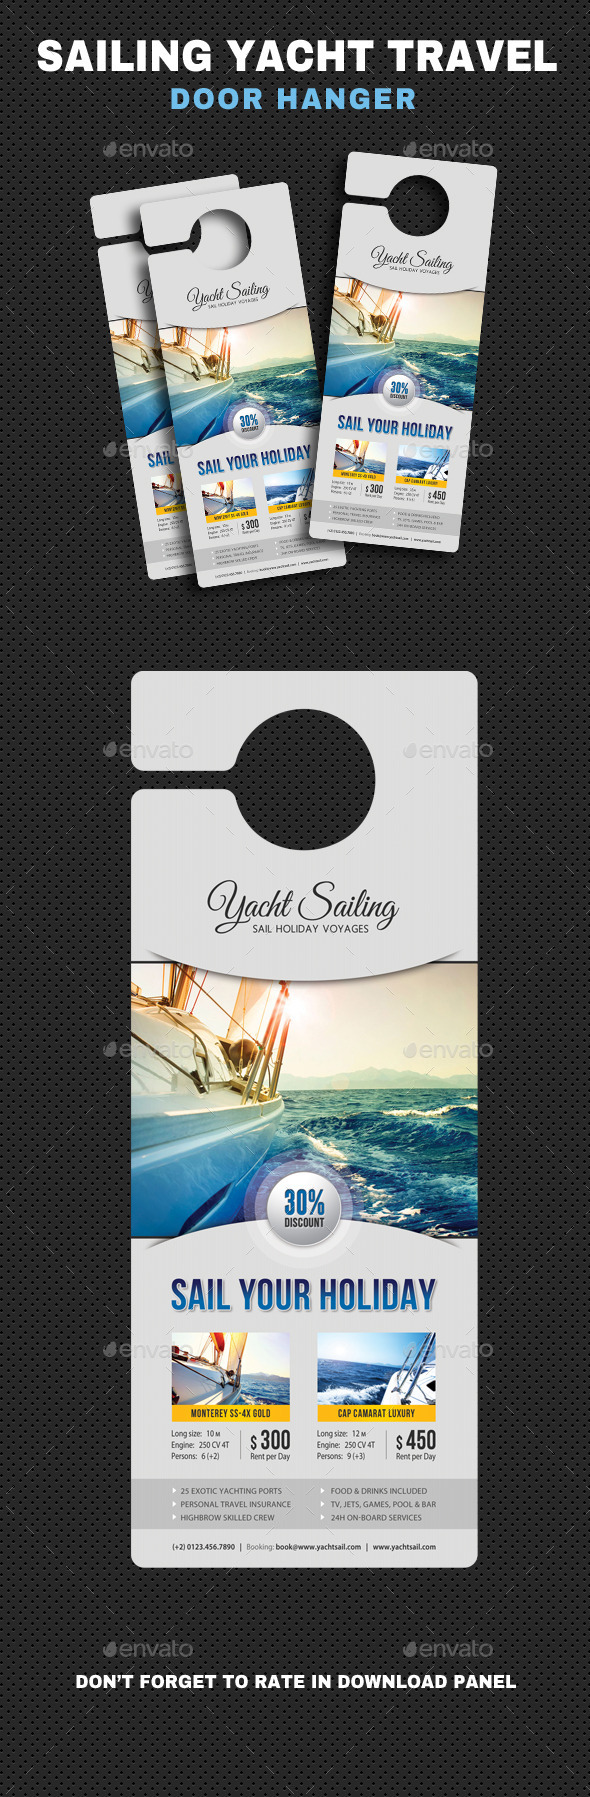 Sailing Yacht Travel Door Hanger V01 - Miscellaneous Print Templates